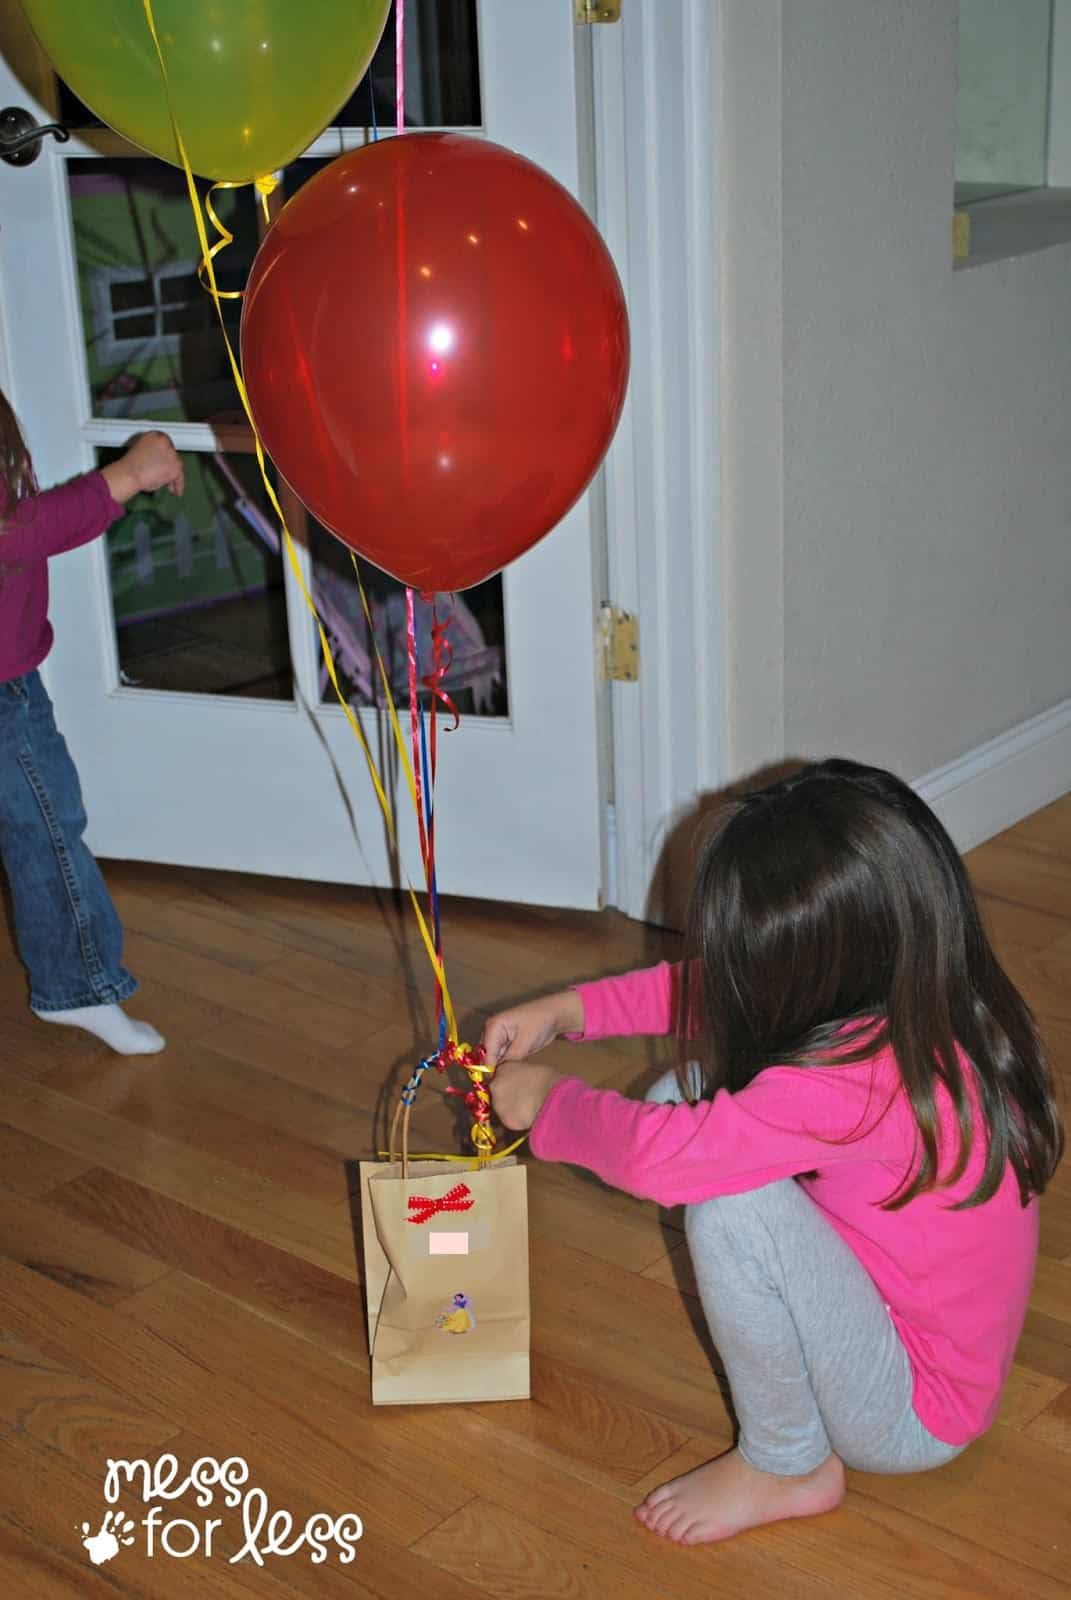 balloons and a bag